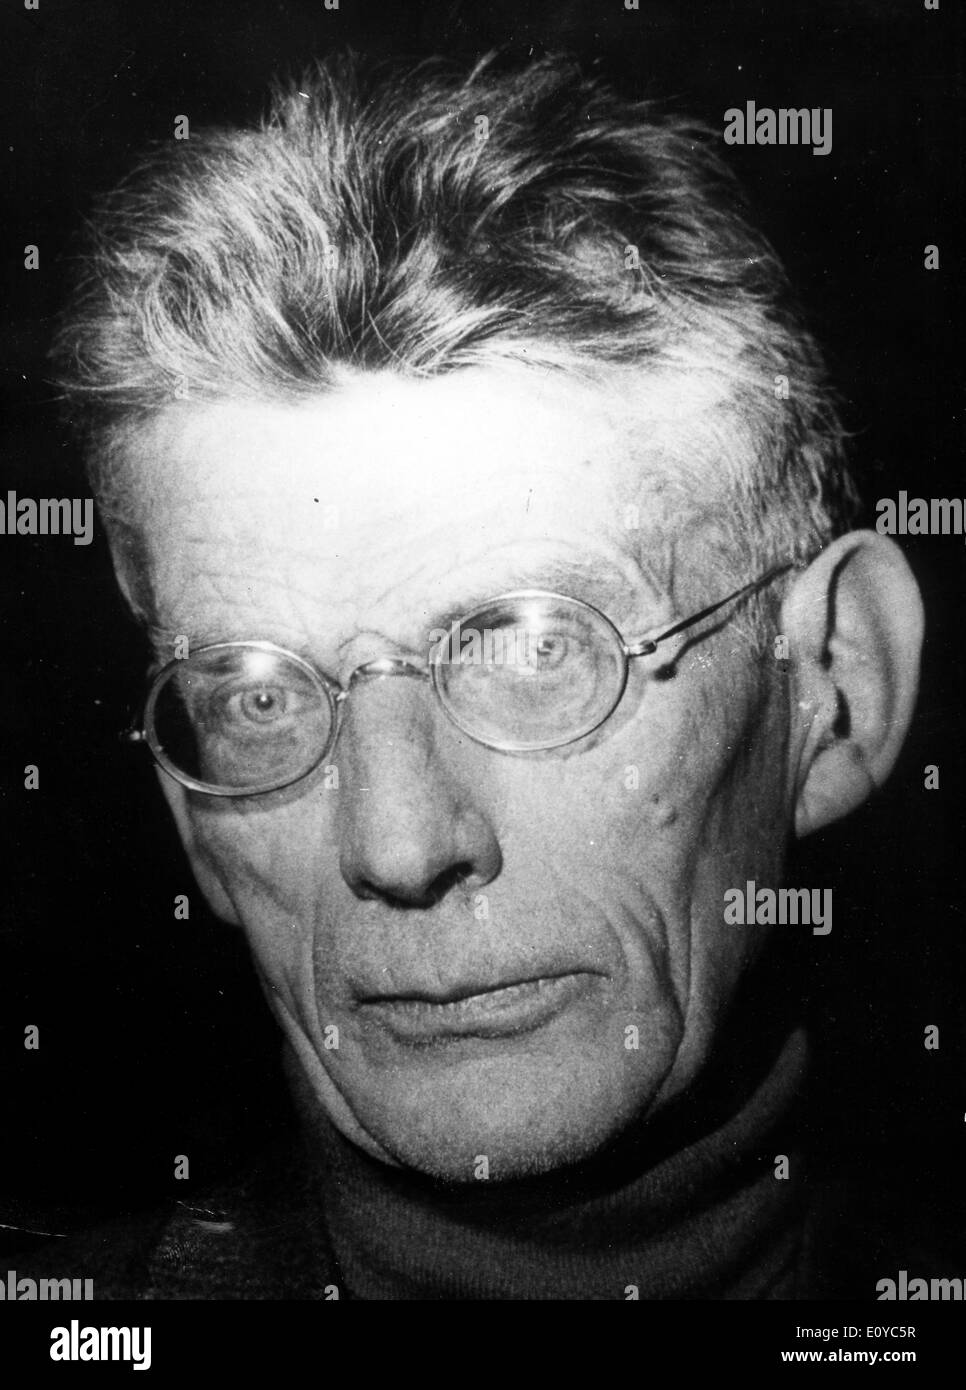 Writer Samuel Beckett wins 1969 Nobel Prize - Stock Image